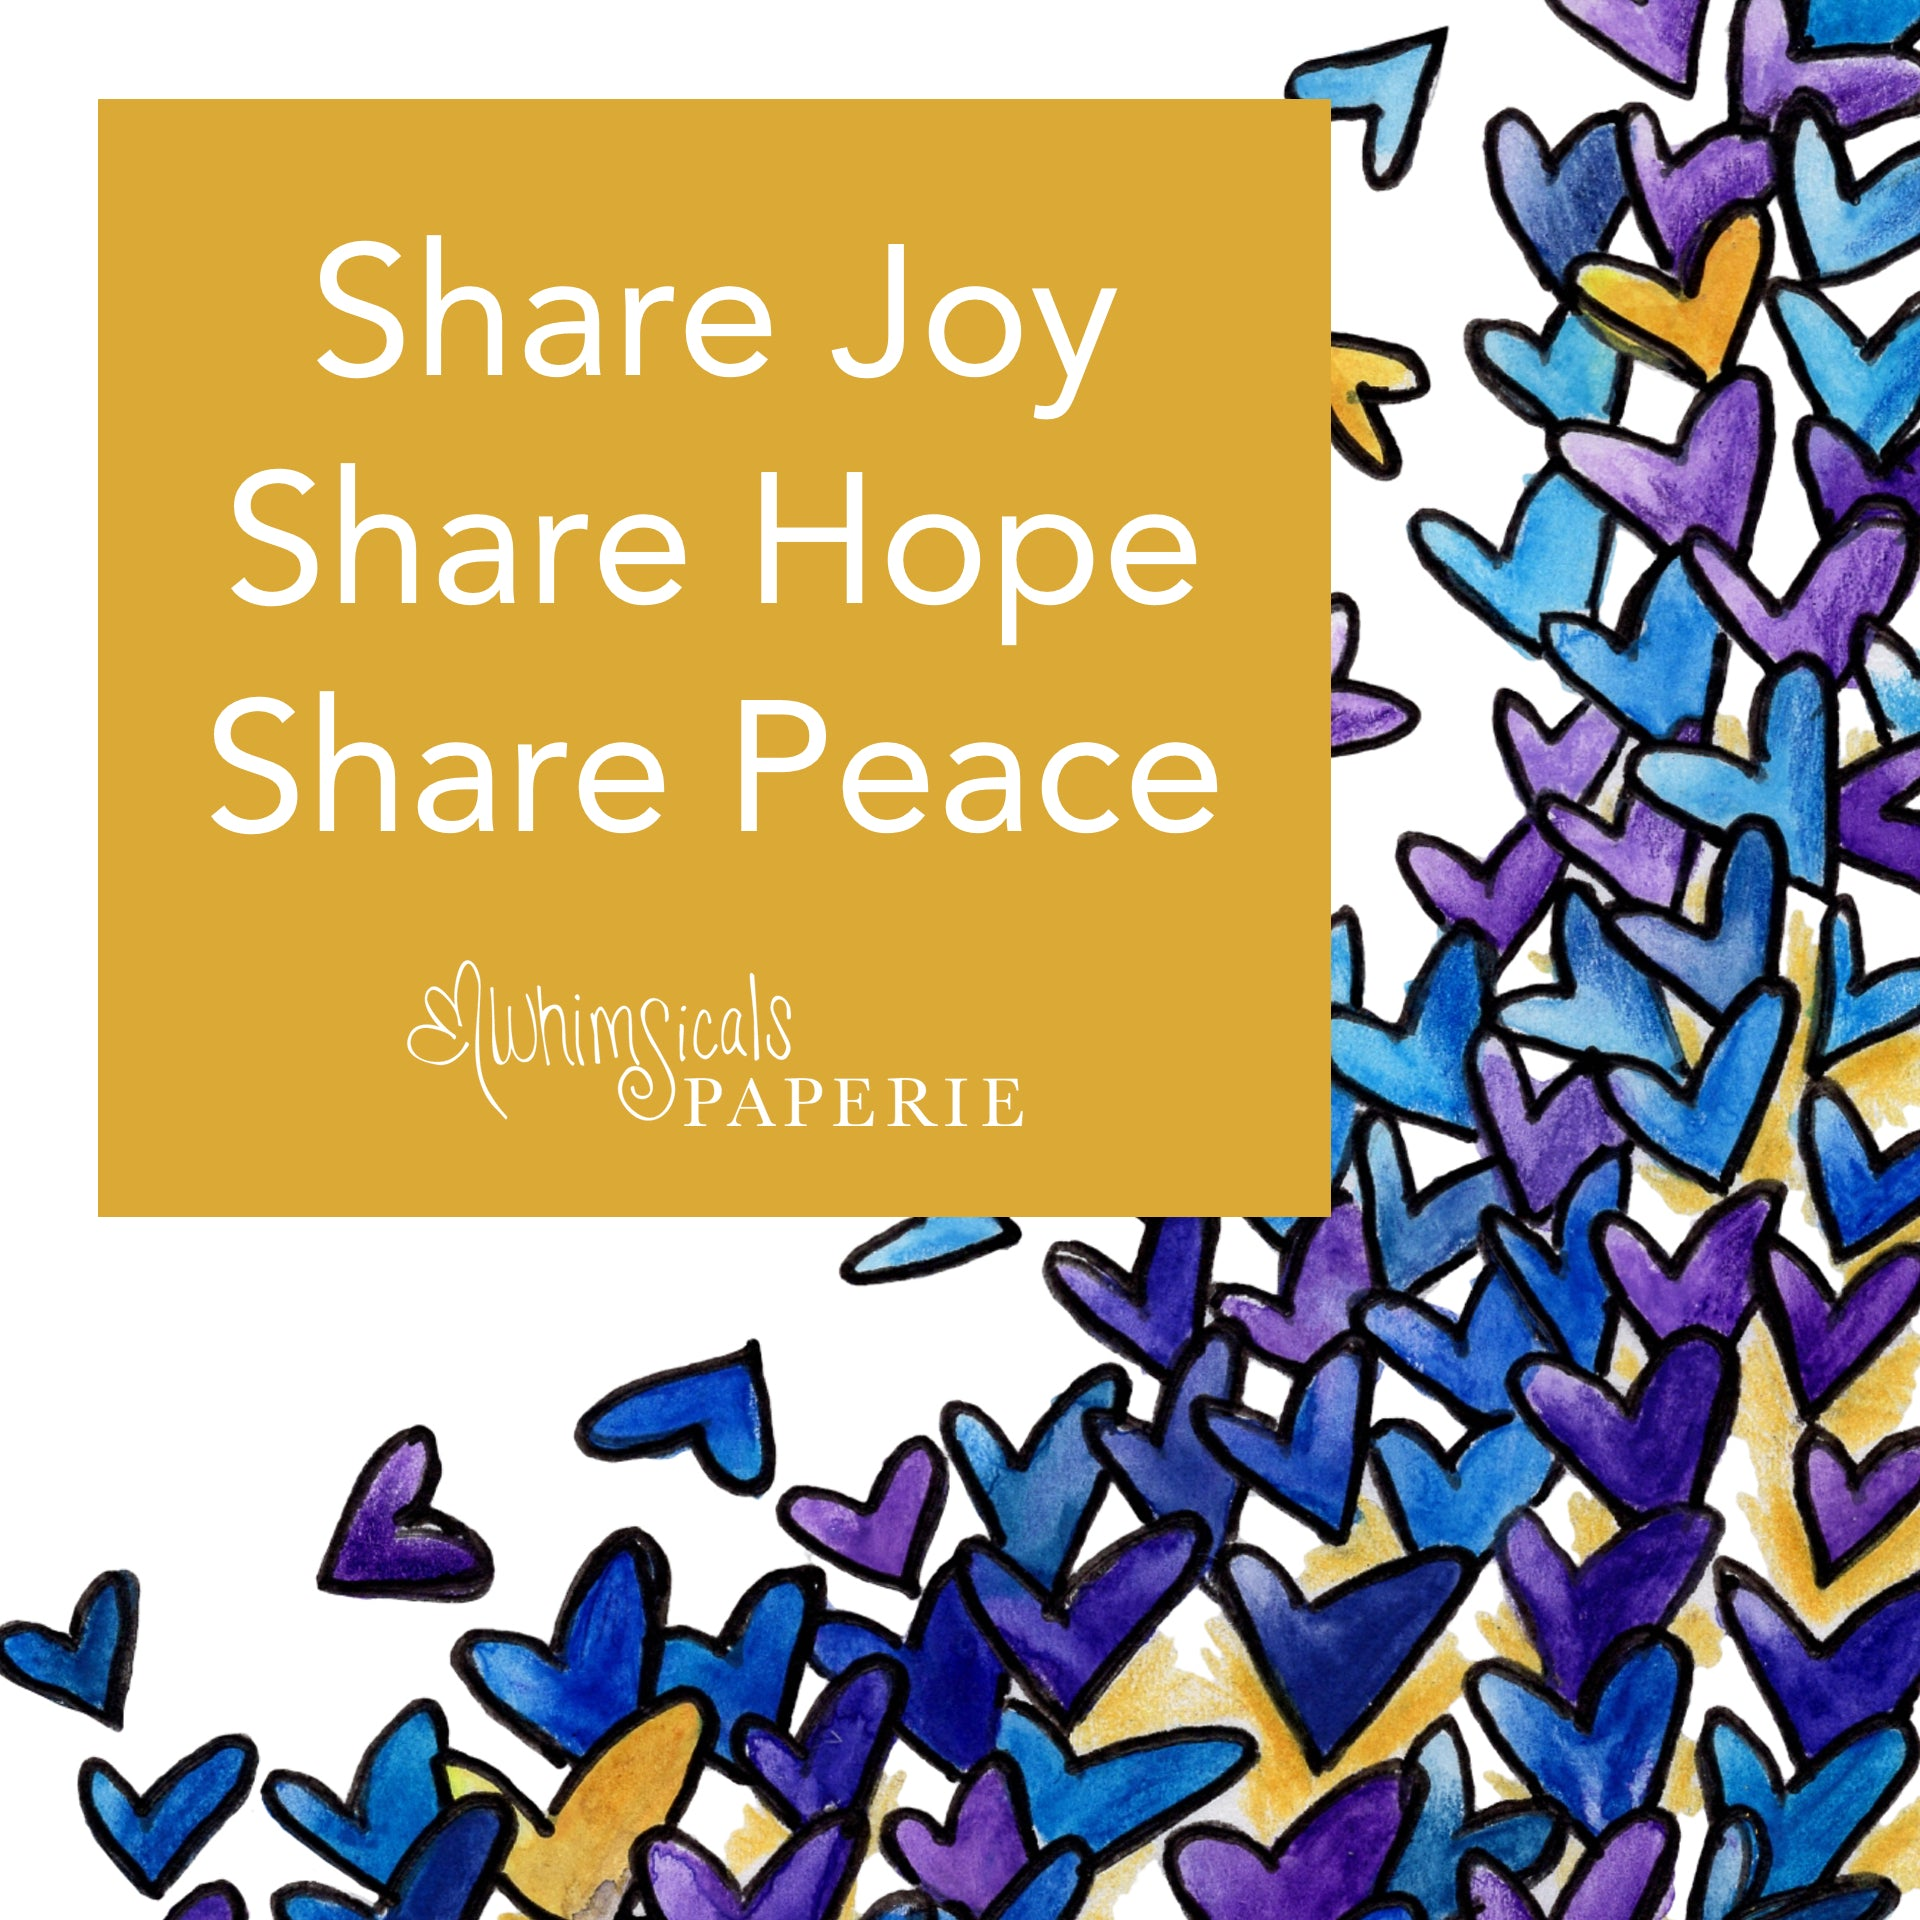 Share Joy, Share Hope, Share Peace